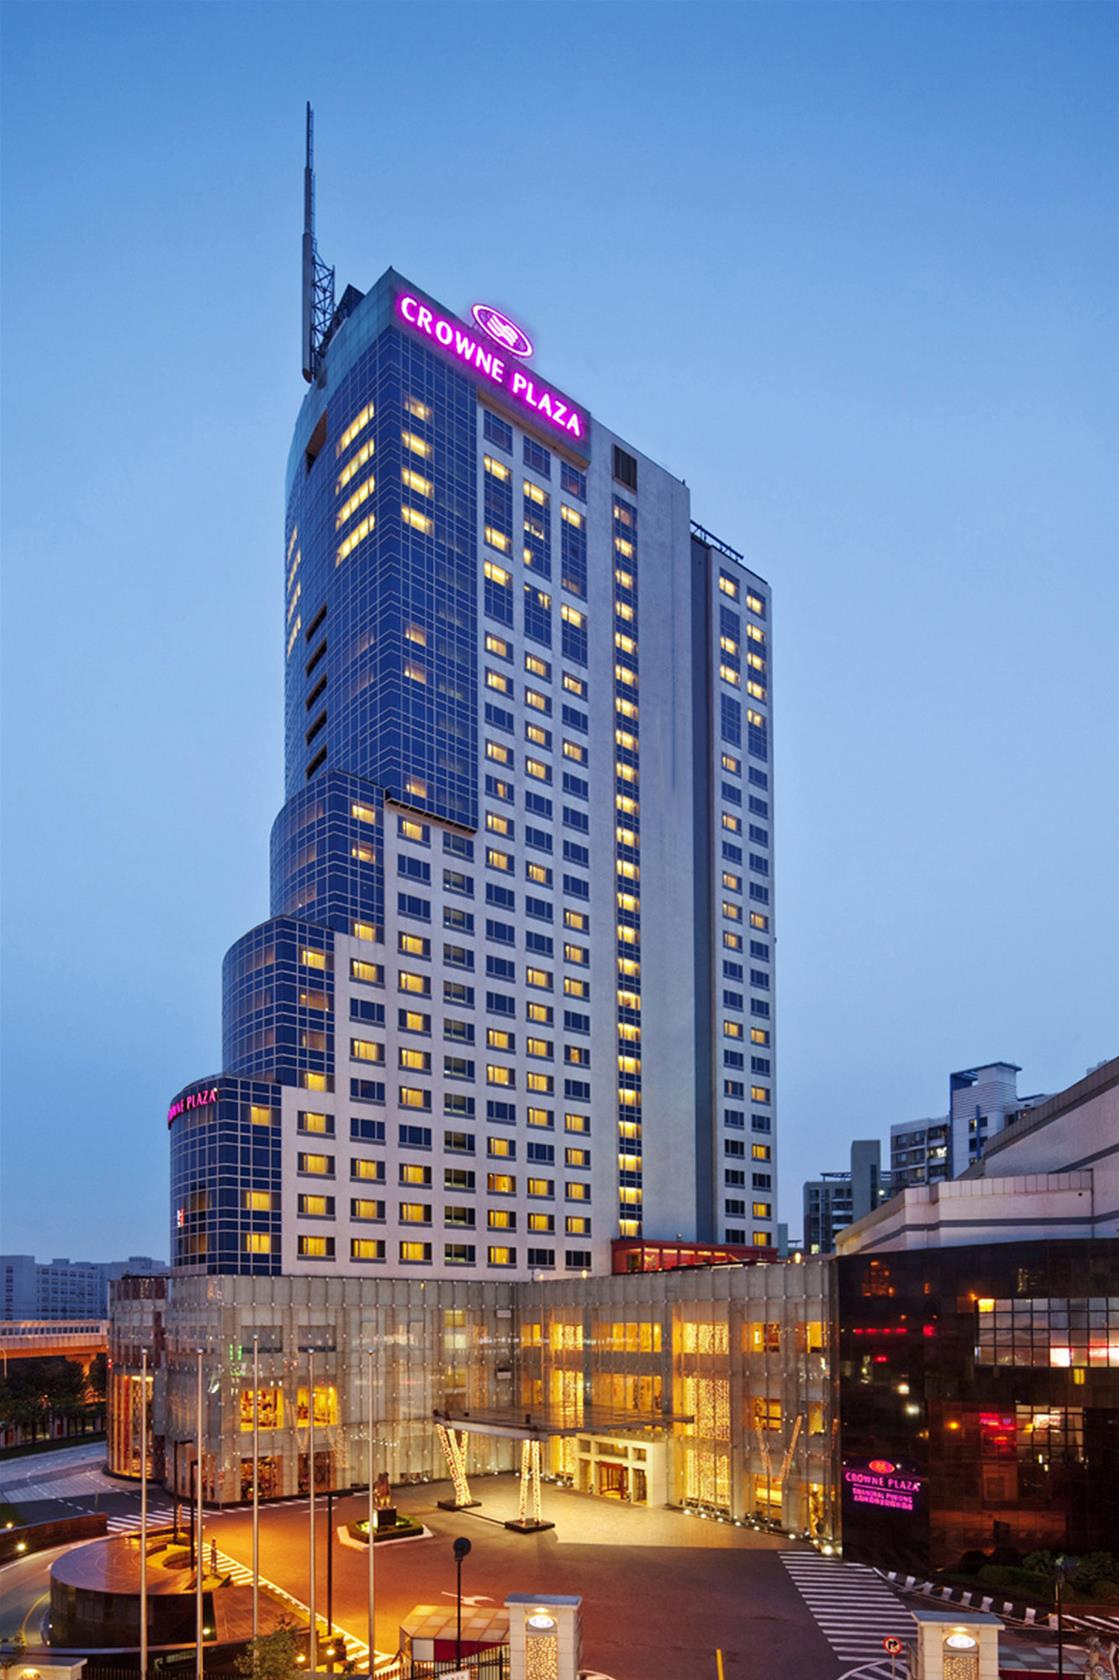 Hotel Crowne Plaza Pudong